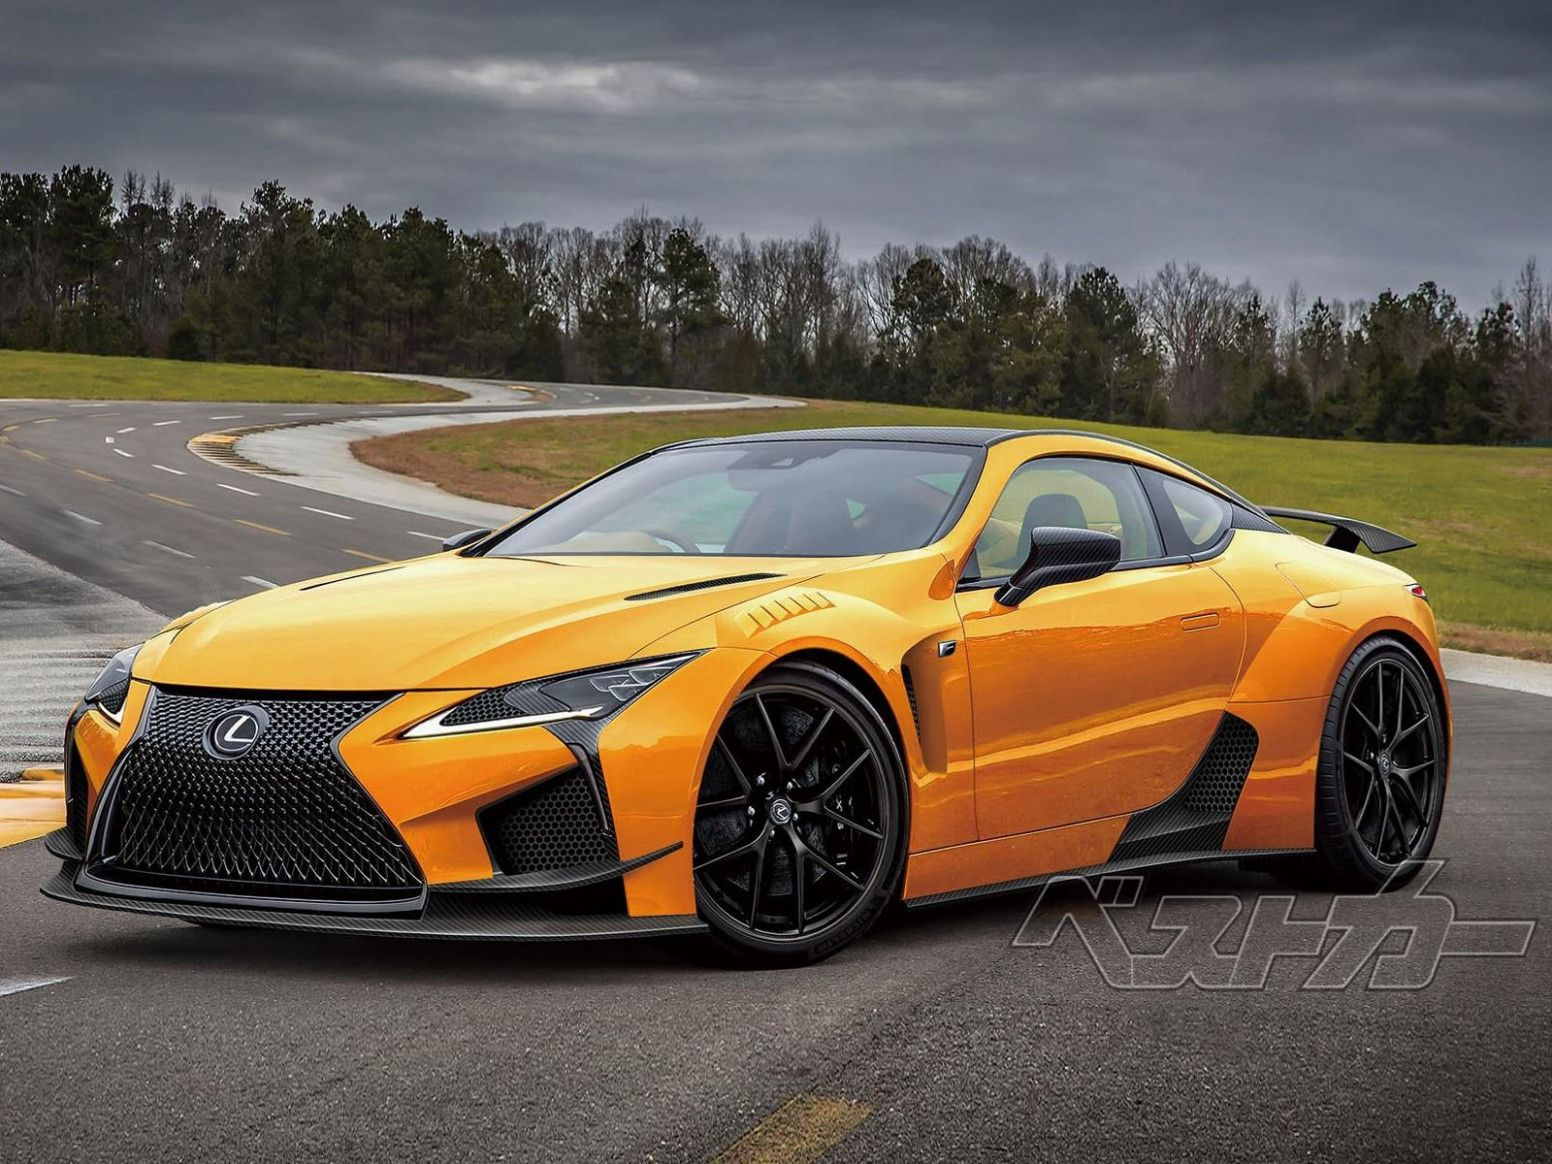 Lexus Lfa 2020 Pricing in 2020 Lexus lfa, Lexus lc